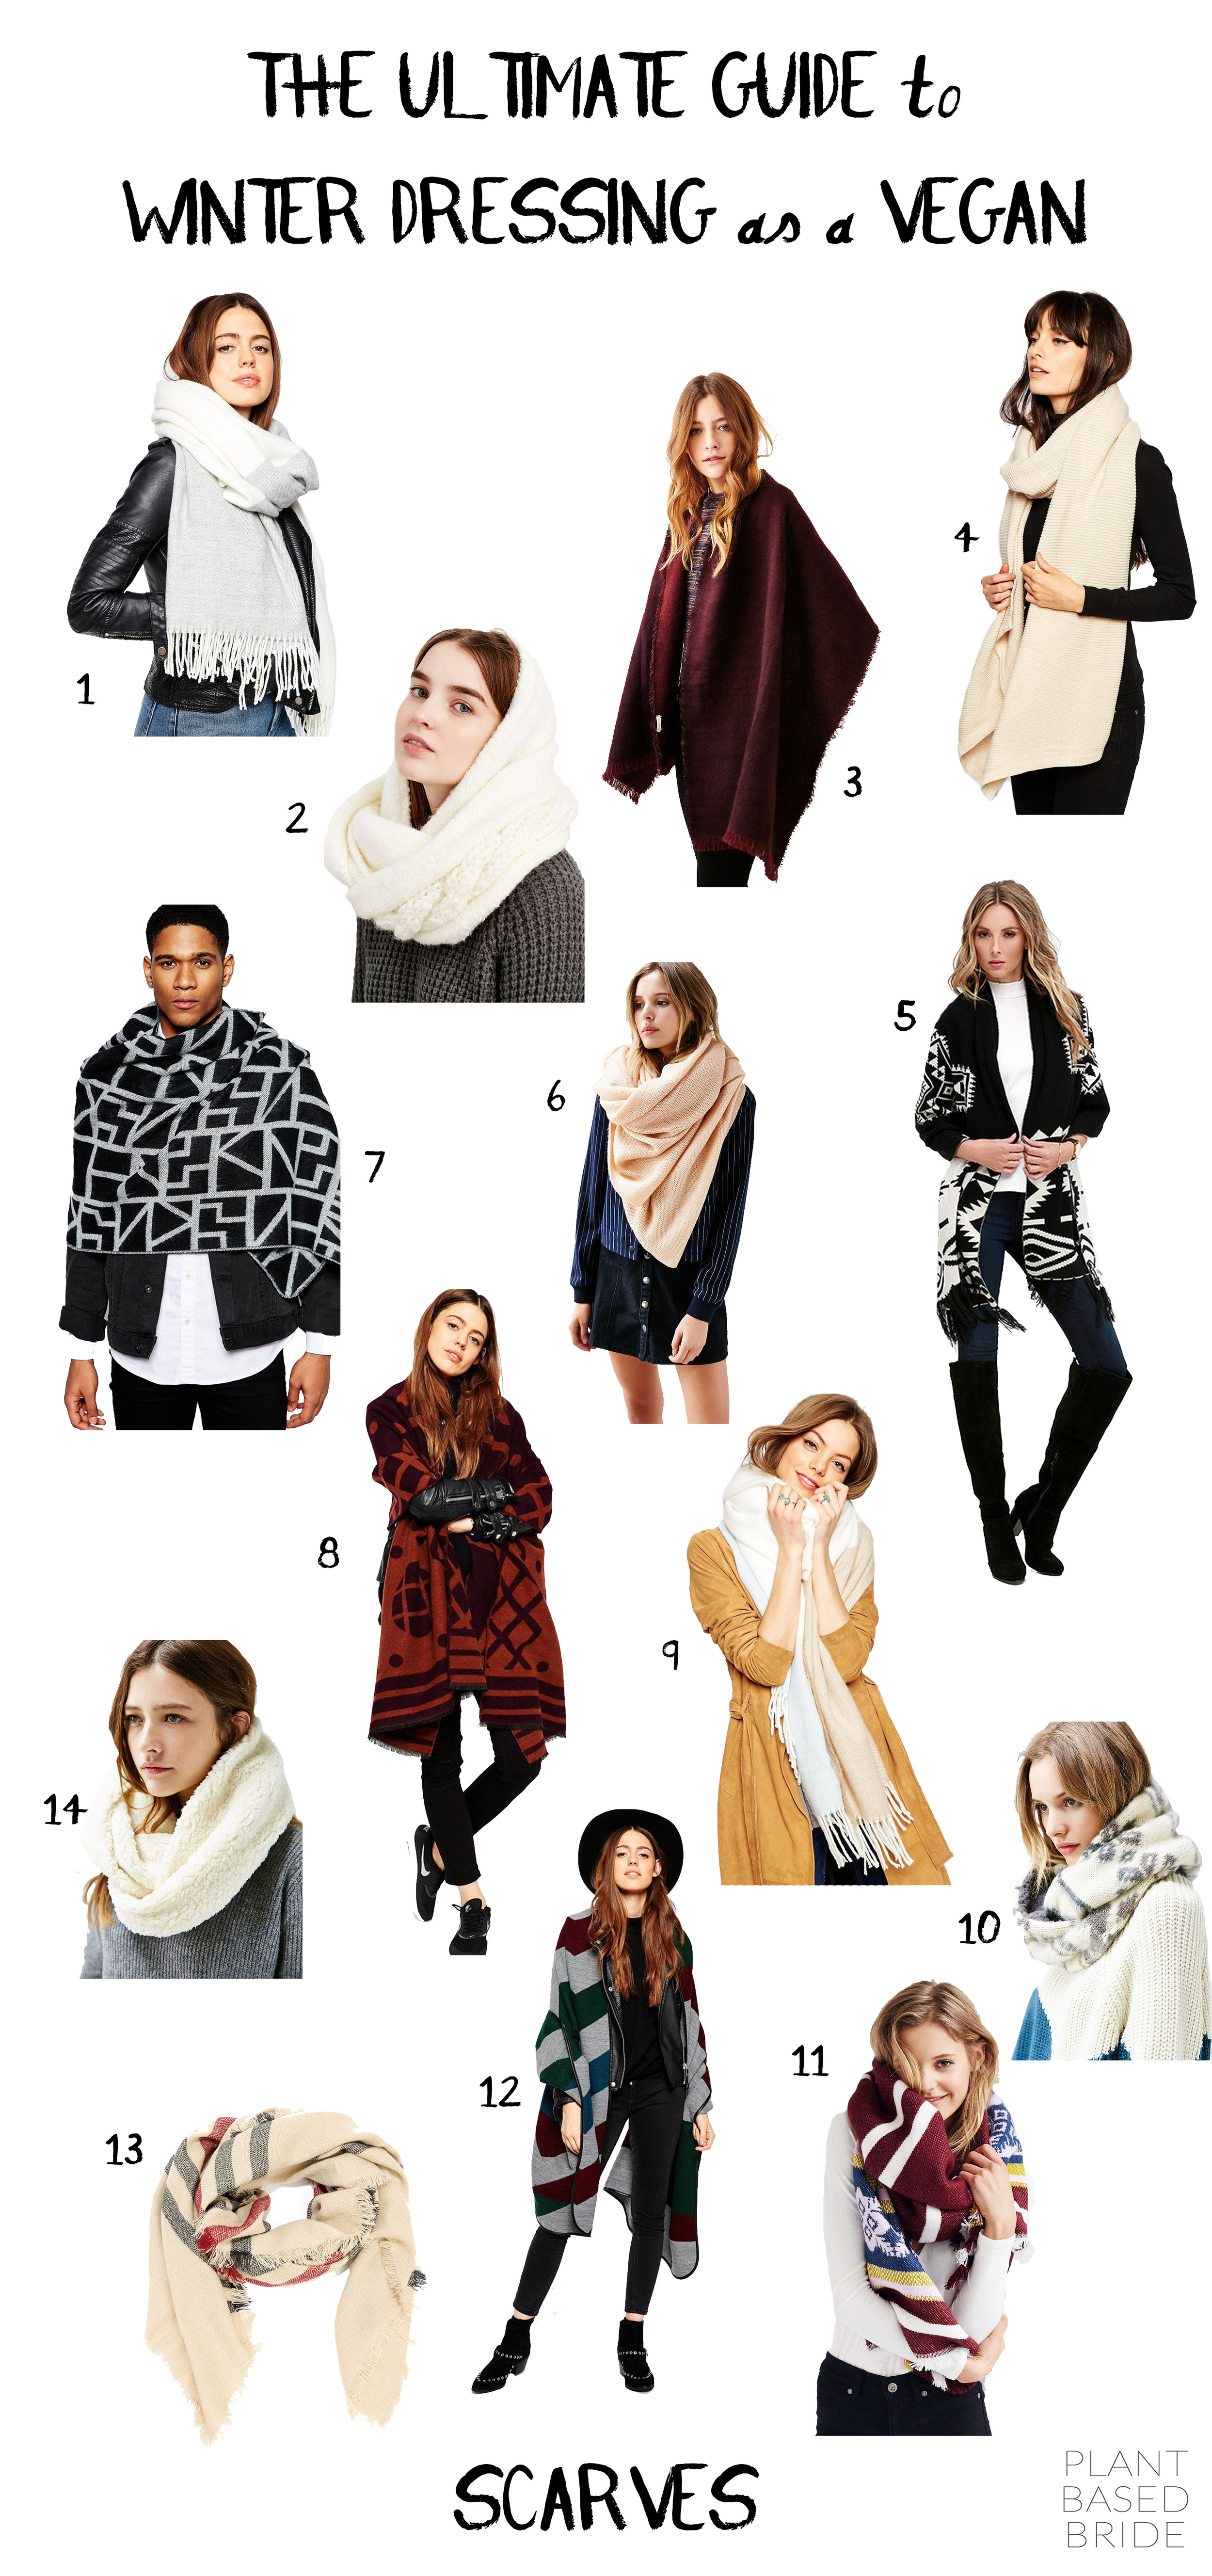 Vegan Scarves // The Ultimate Guide to Winter Dressing as a Vegan // Plant Based Bride